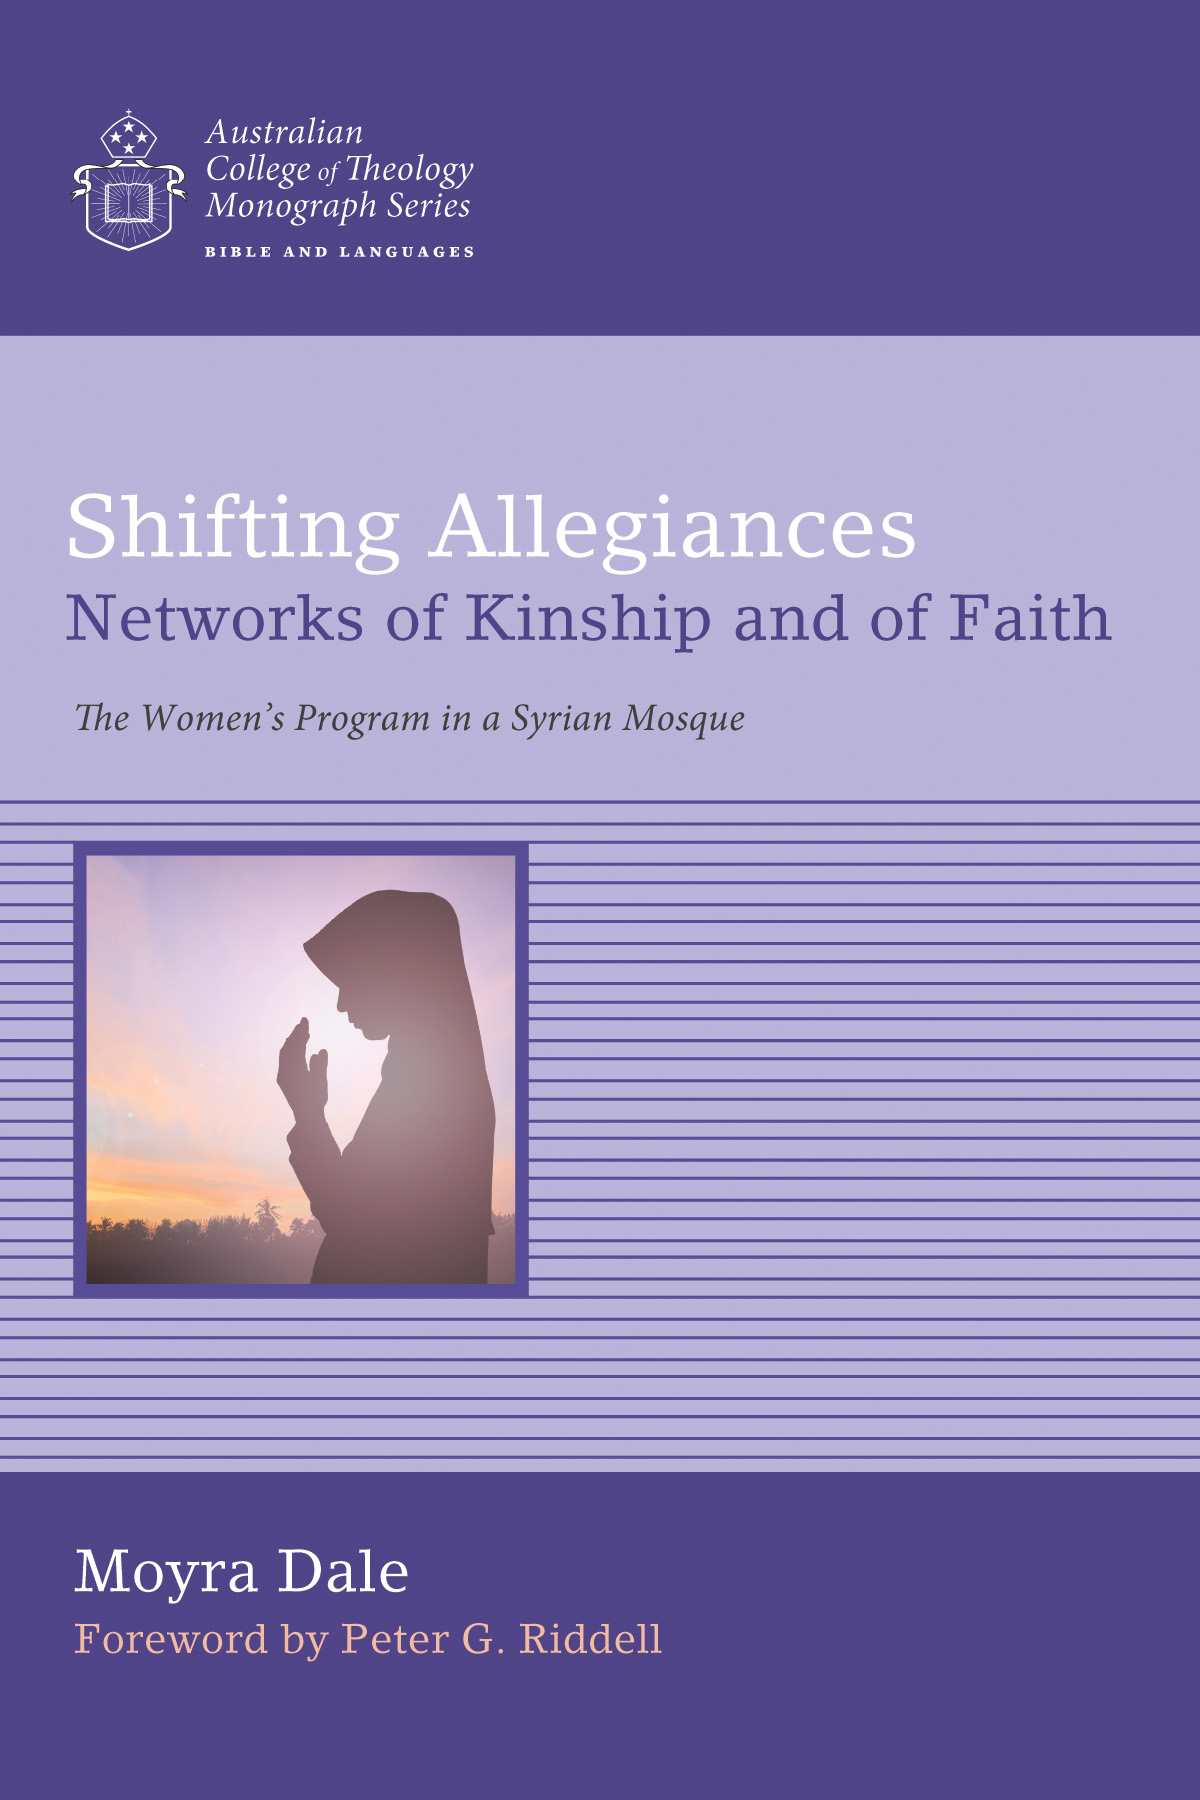 Shifting Allegiances: Networks of Kinship and of Faith - The Women's Program in a Syrian Mosque